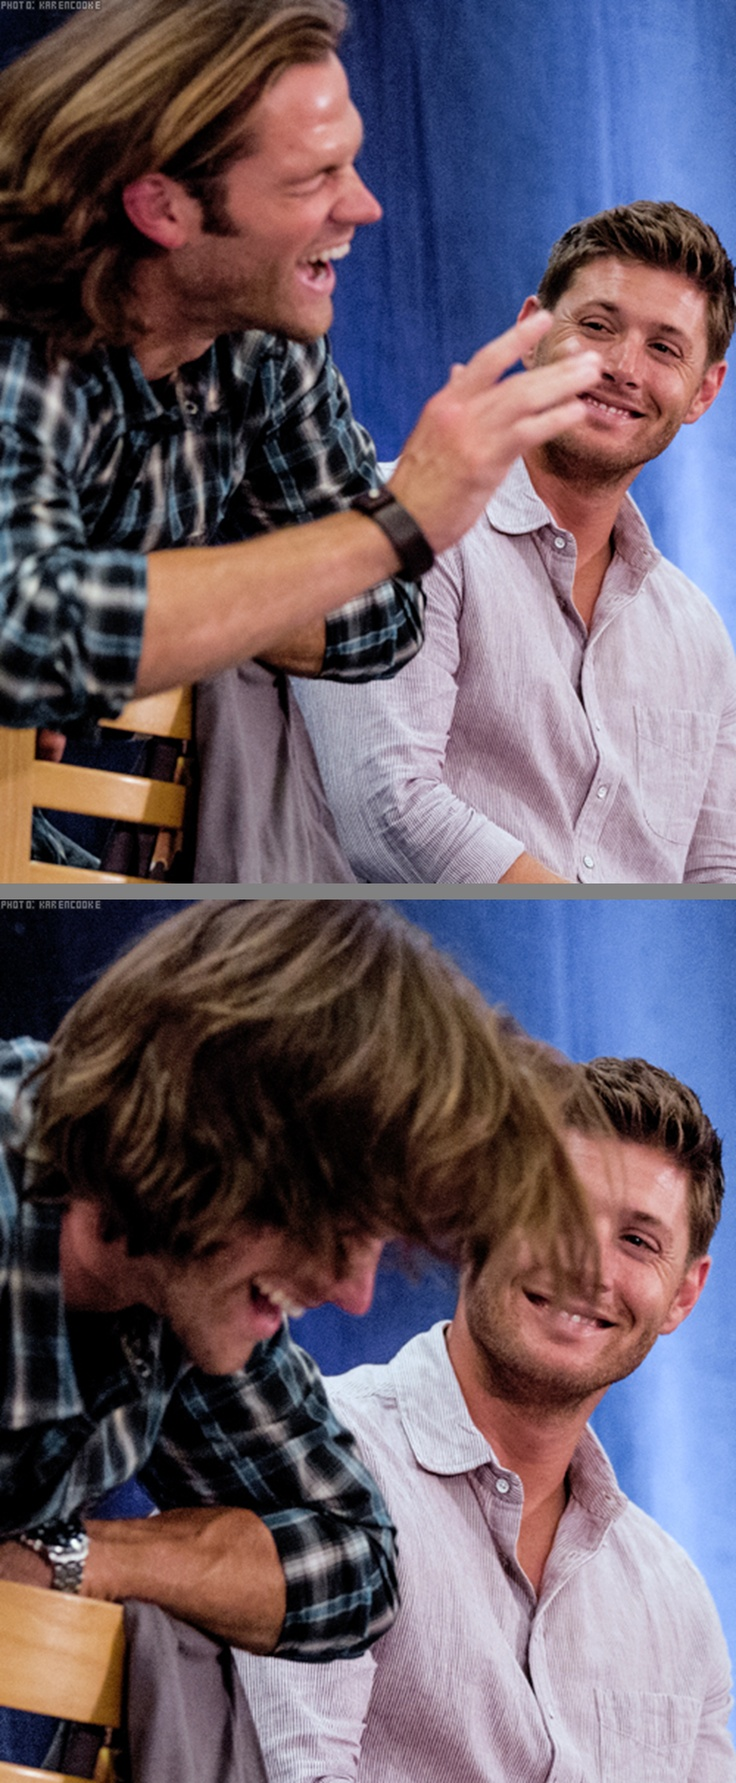 awwww J2 love ♥◡♥ I love it when Jensen takes pleasure in Jared's laughter and viceversa ^_^ || Vancon 2012 #Vancon2012 || Jensen Ackles || Jared Padalecki #Supernatural Convention